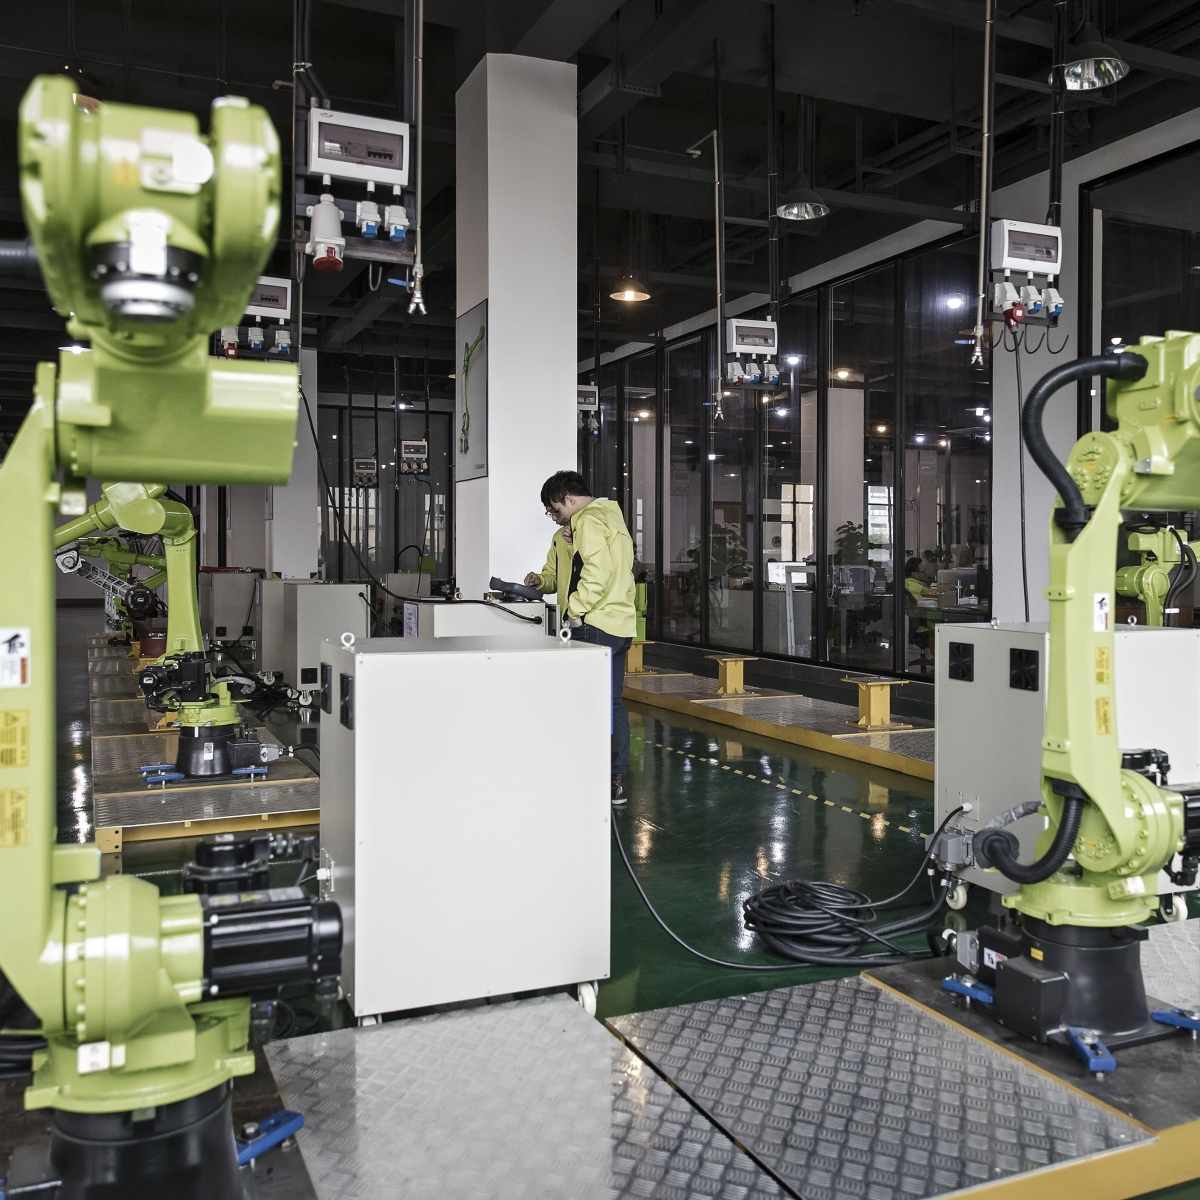 Industrial Internet Of Things: Re-Imagining The Future